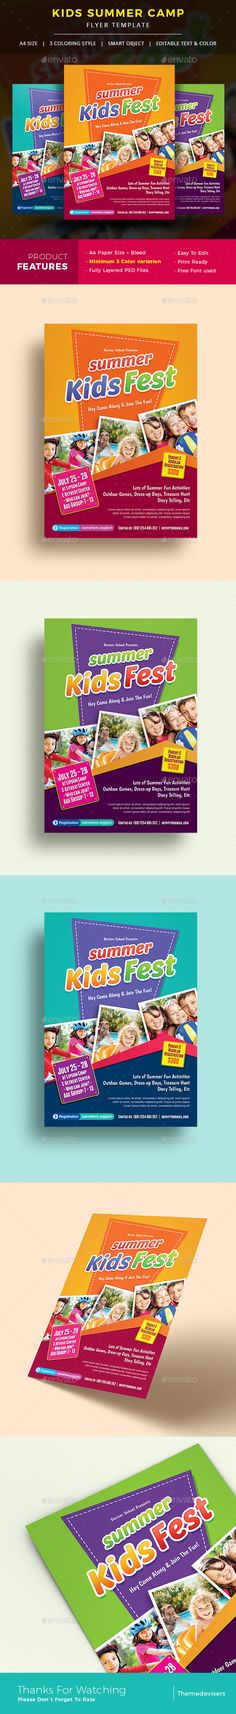 Kids Summer Camp Flyer — Photoshop PSD #school #spring camp • Available here → https://graphicriver.net/item/kids-summer-camp-flyer/19738486?ref=pxcr